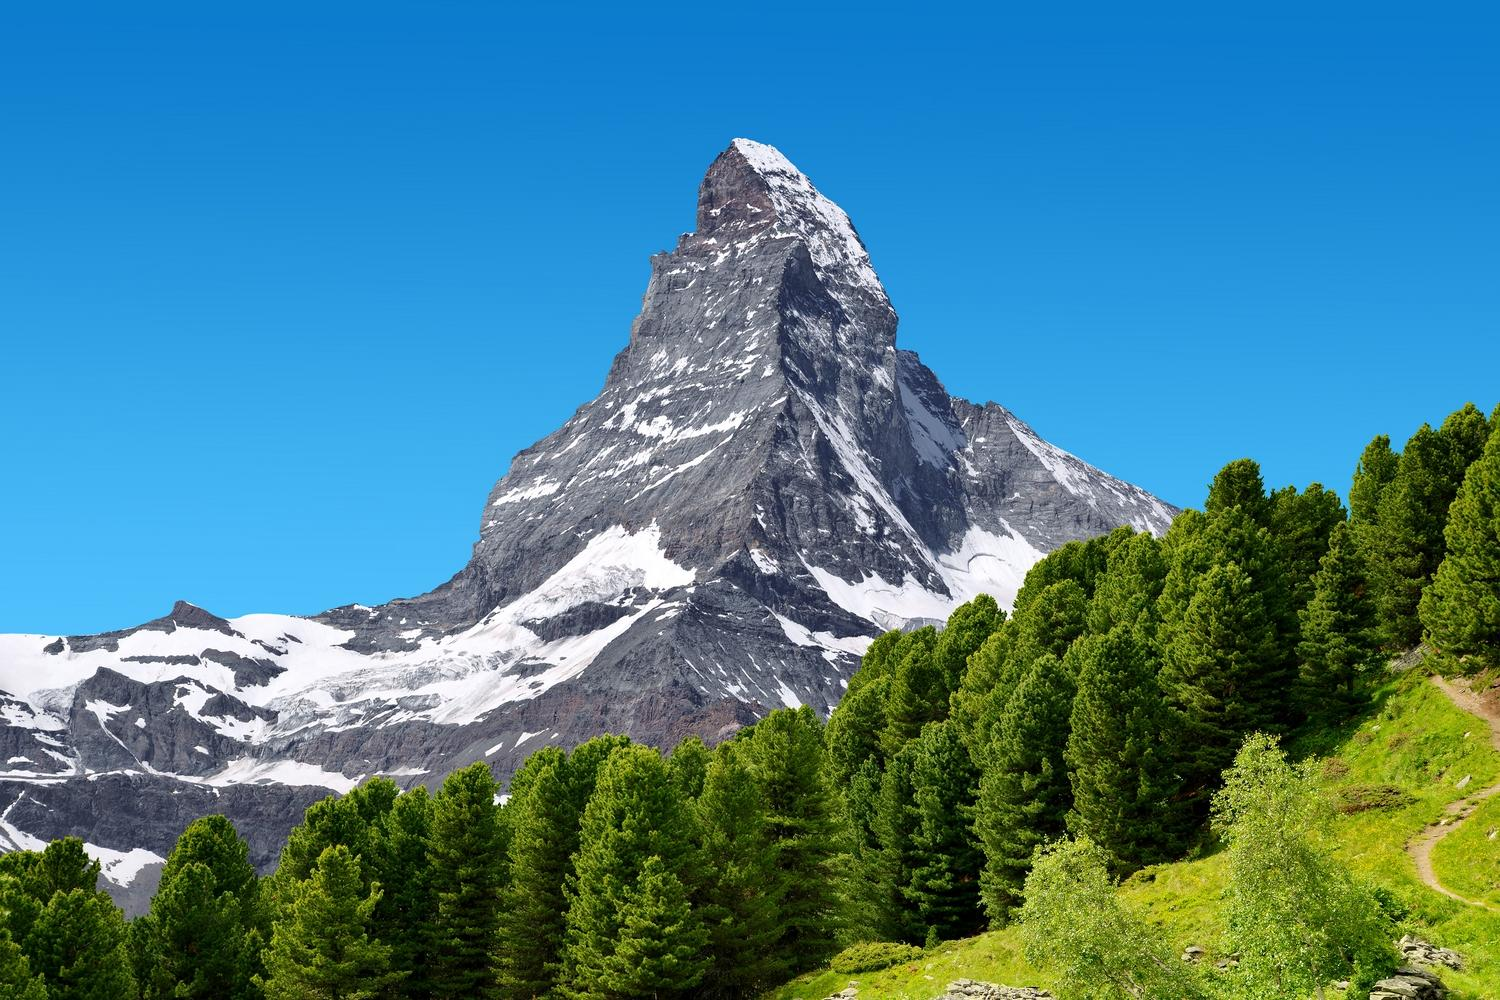 Self-guided walking holiday on the north section of the Tour of the Matterhorn